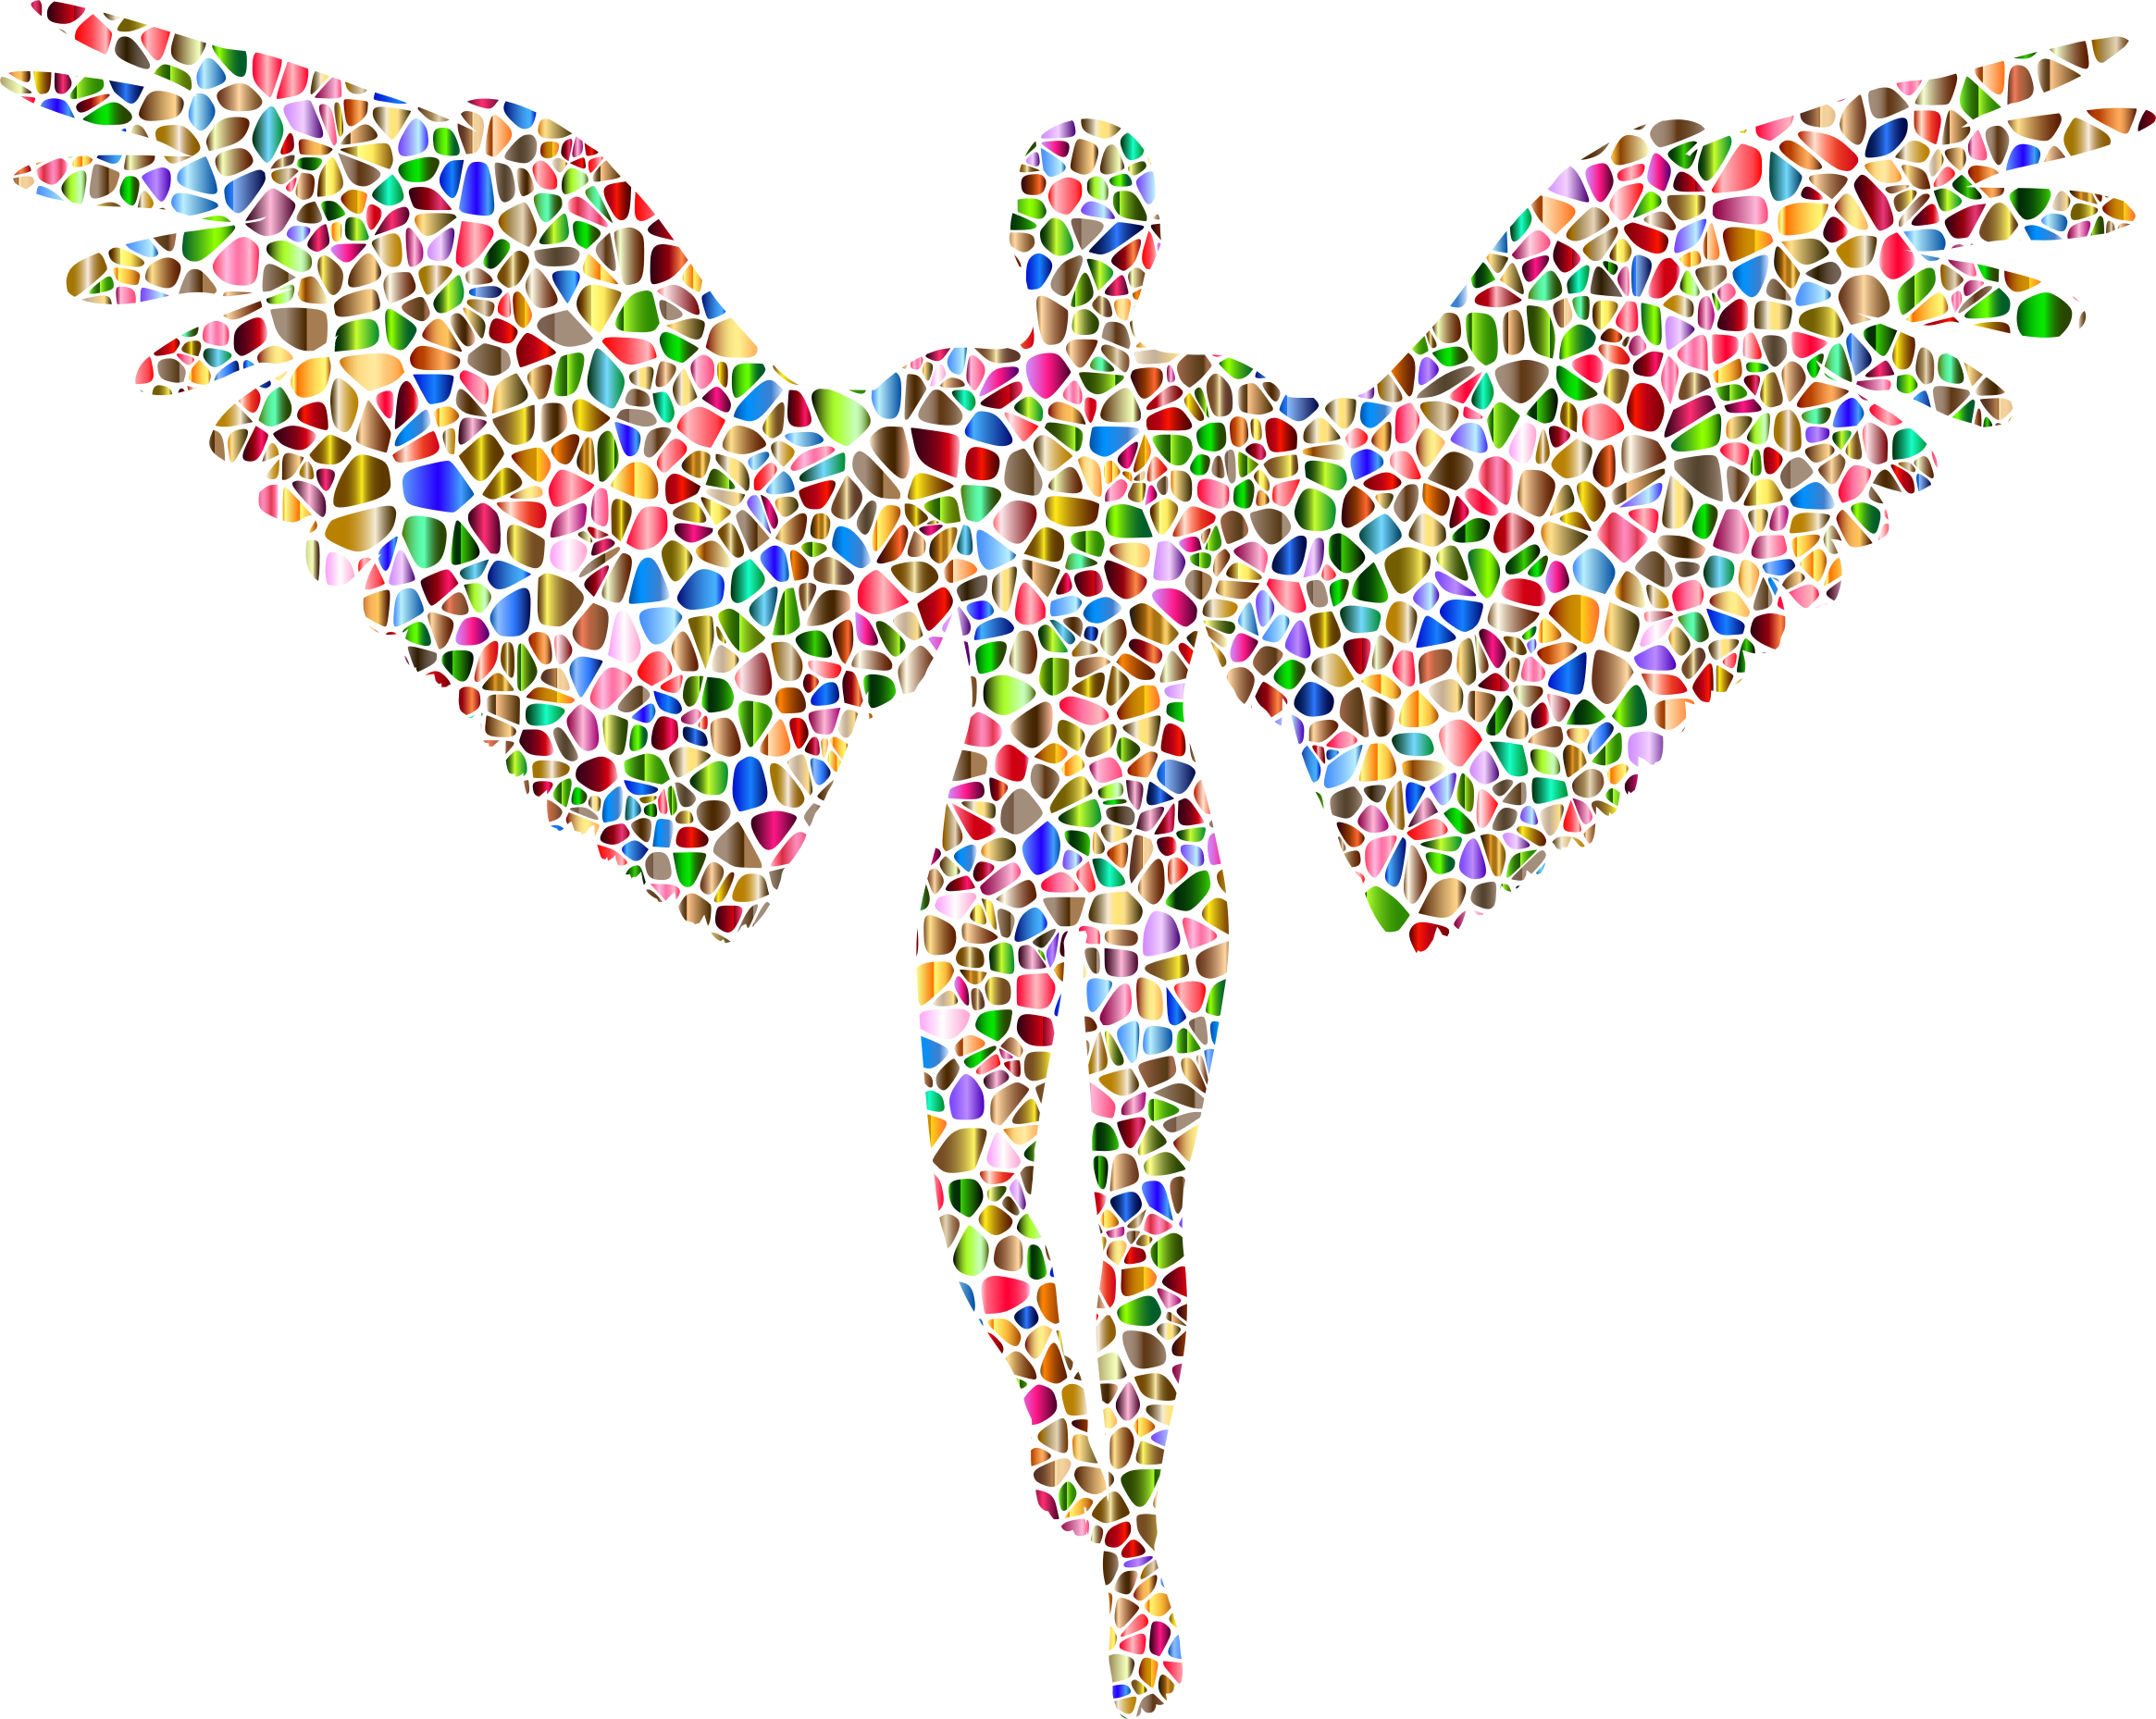 Chromatic Tiled Angel Silhouette No Background Icons - Angel Logo No Background (2330x1858)